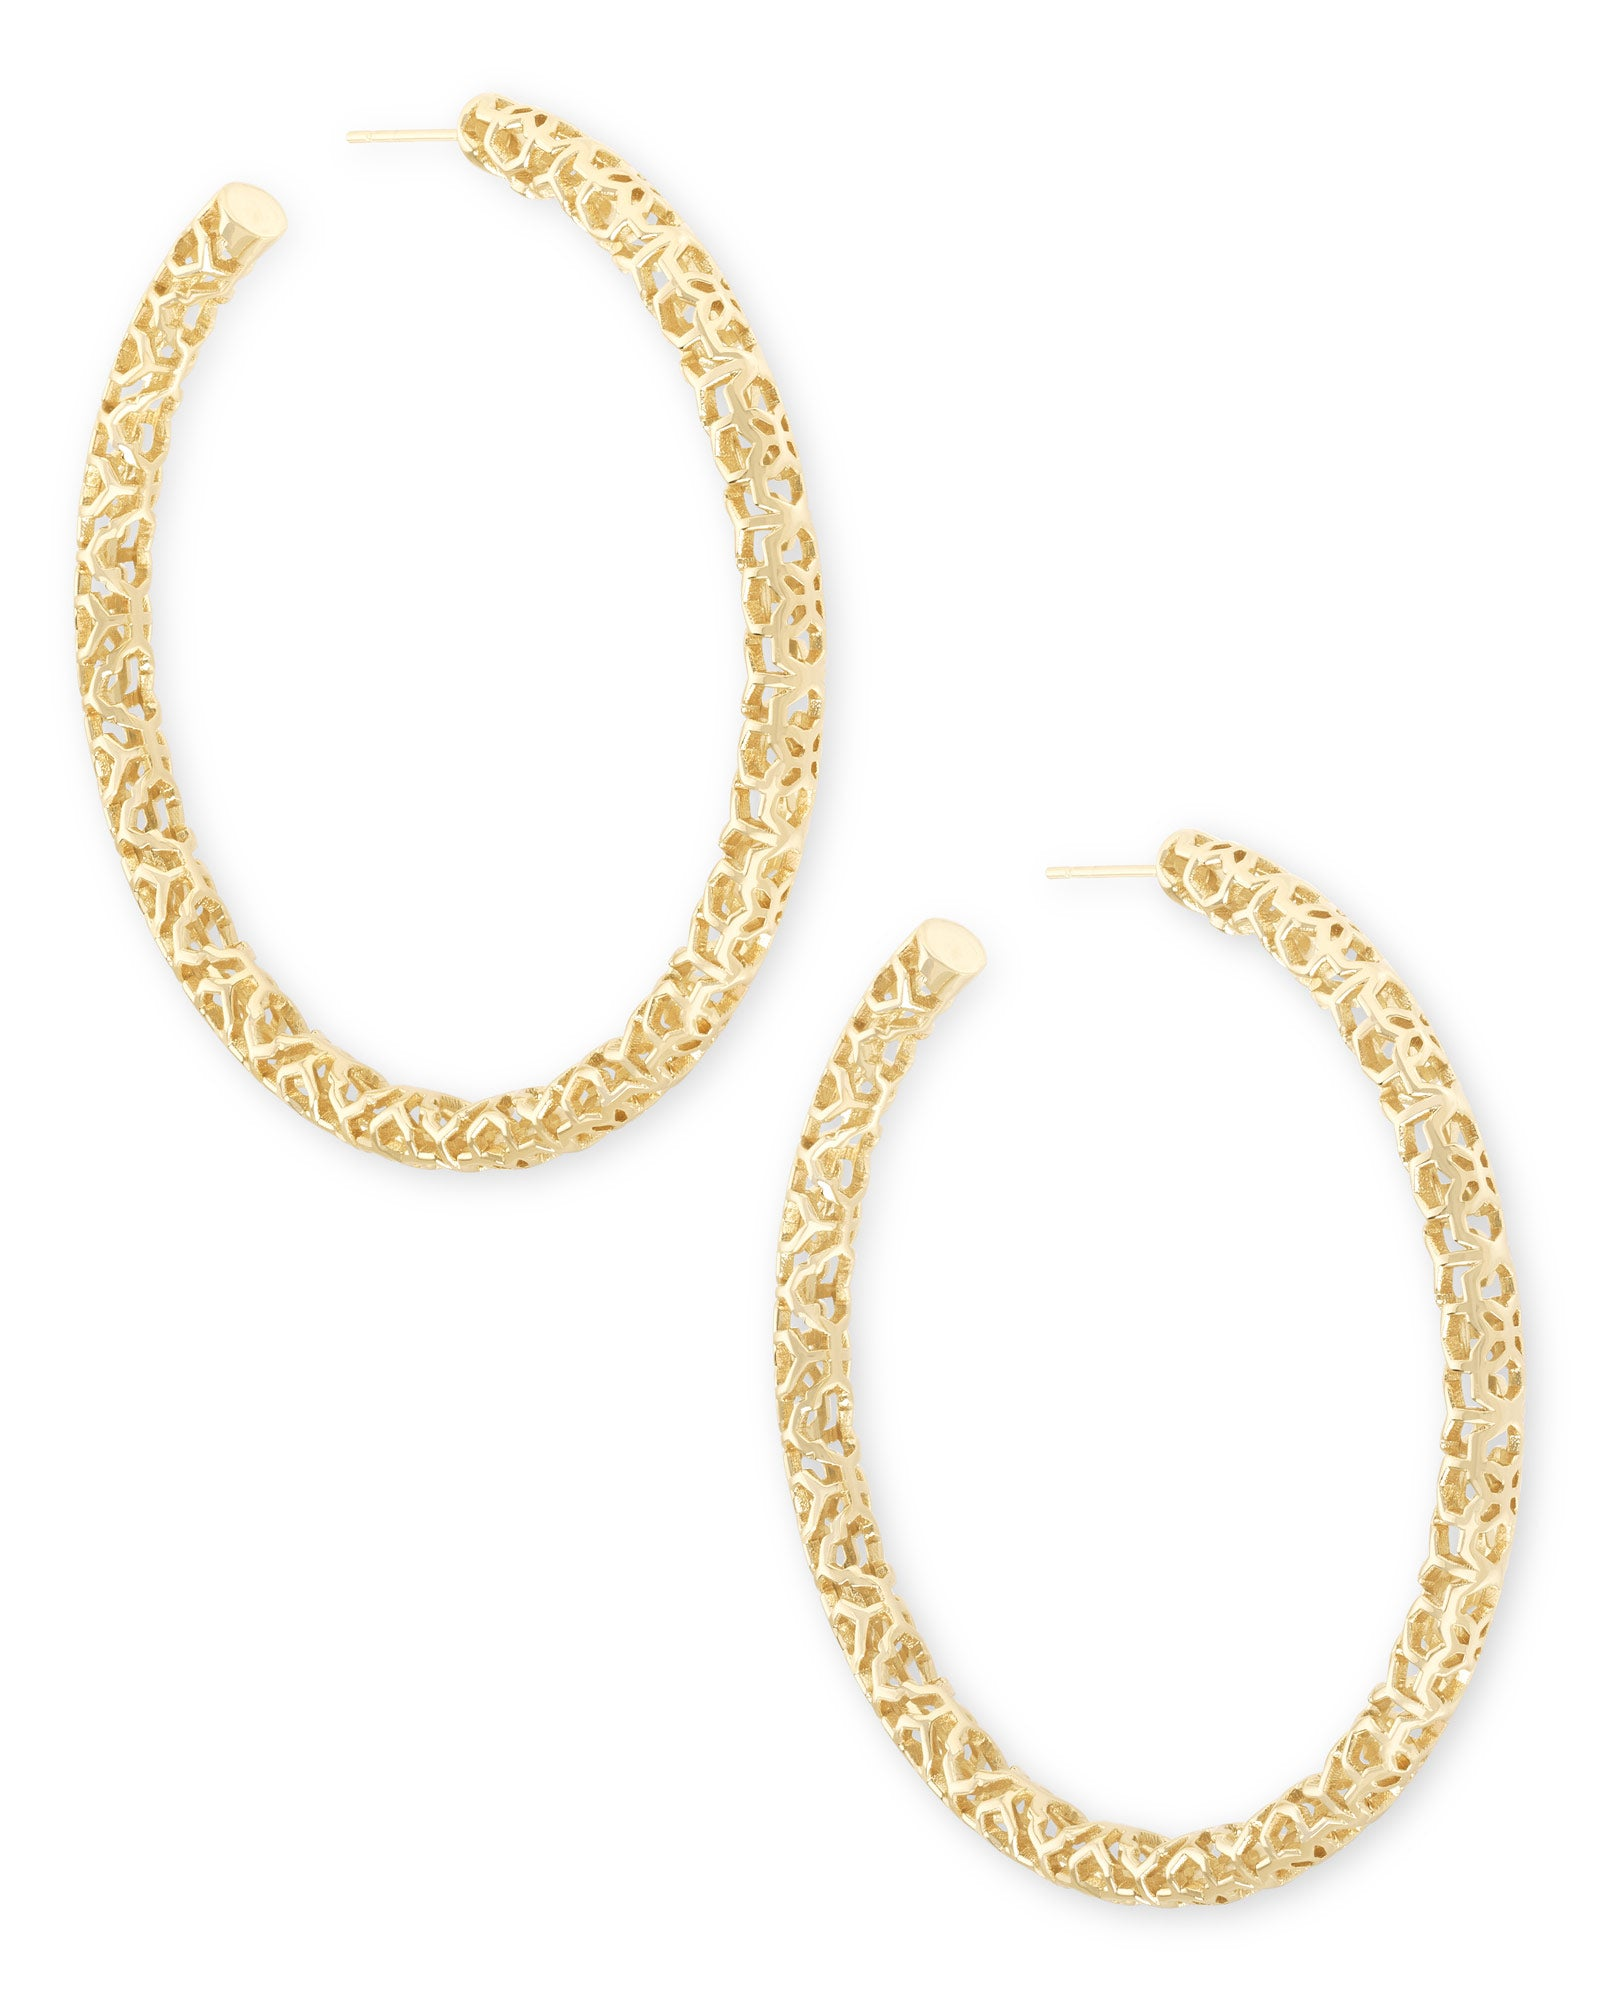 Kendra Scott Maggie Hoop Earrings In Gold Filigree